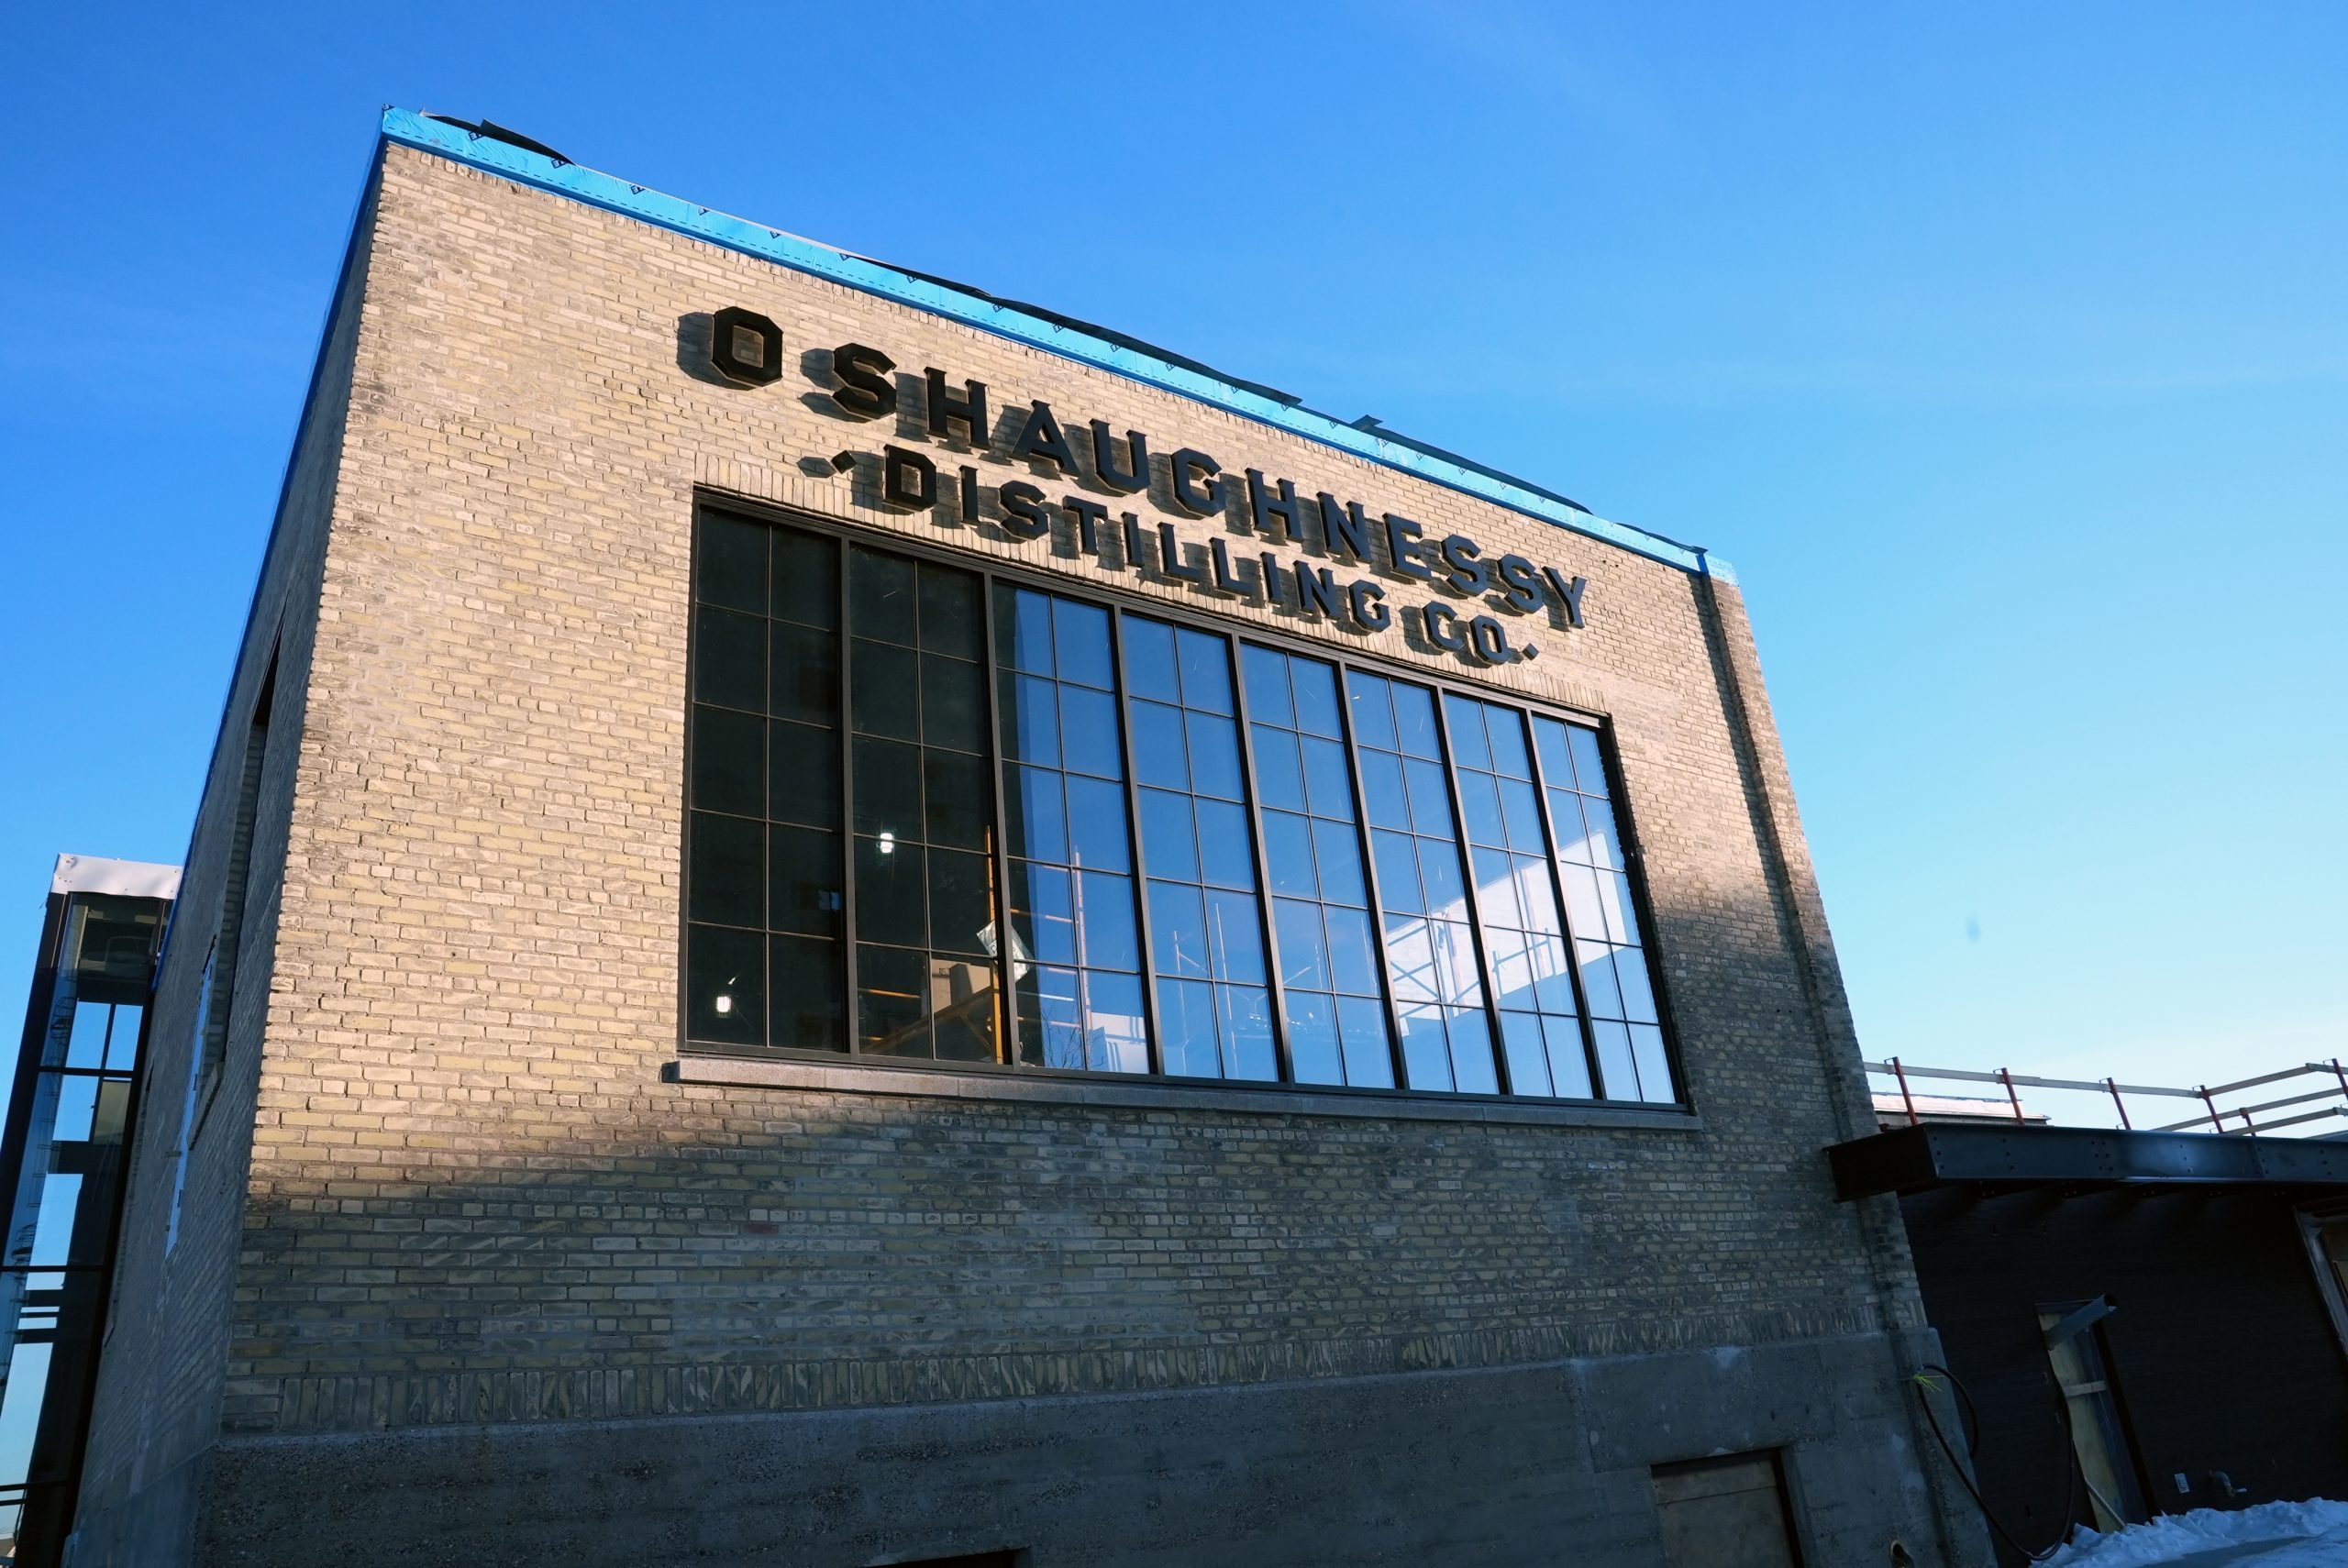 O'Shaughnessy Distilling Co. comes to Malcom Yards